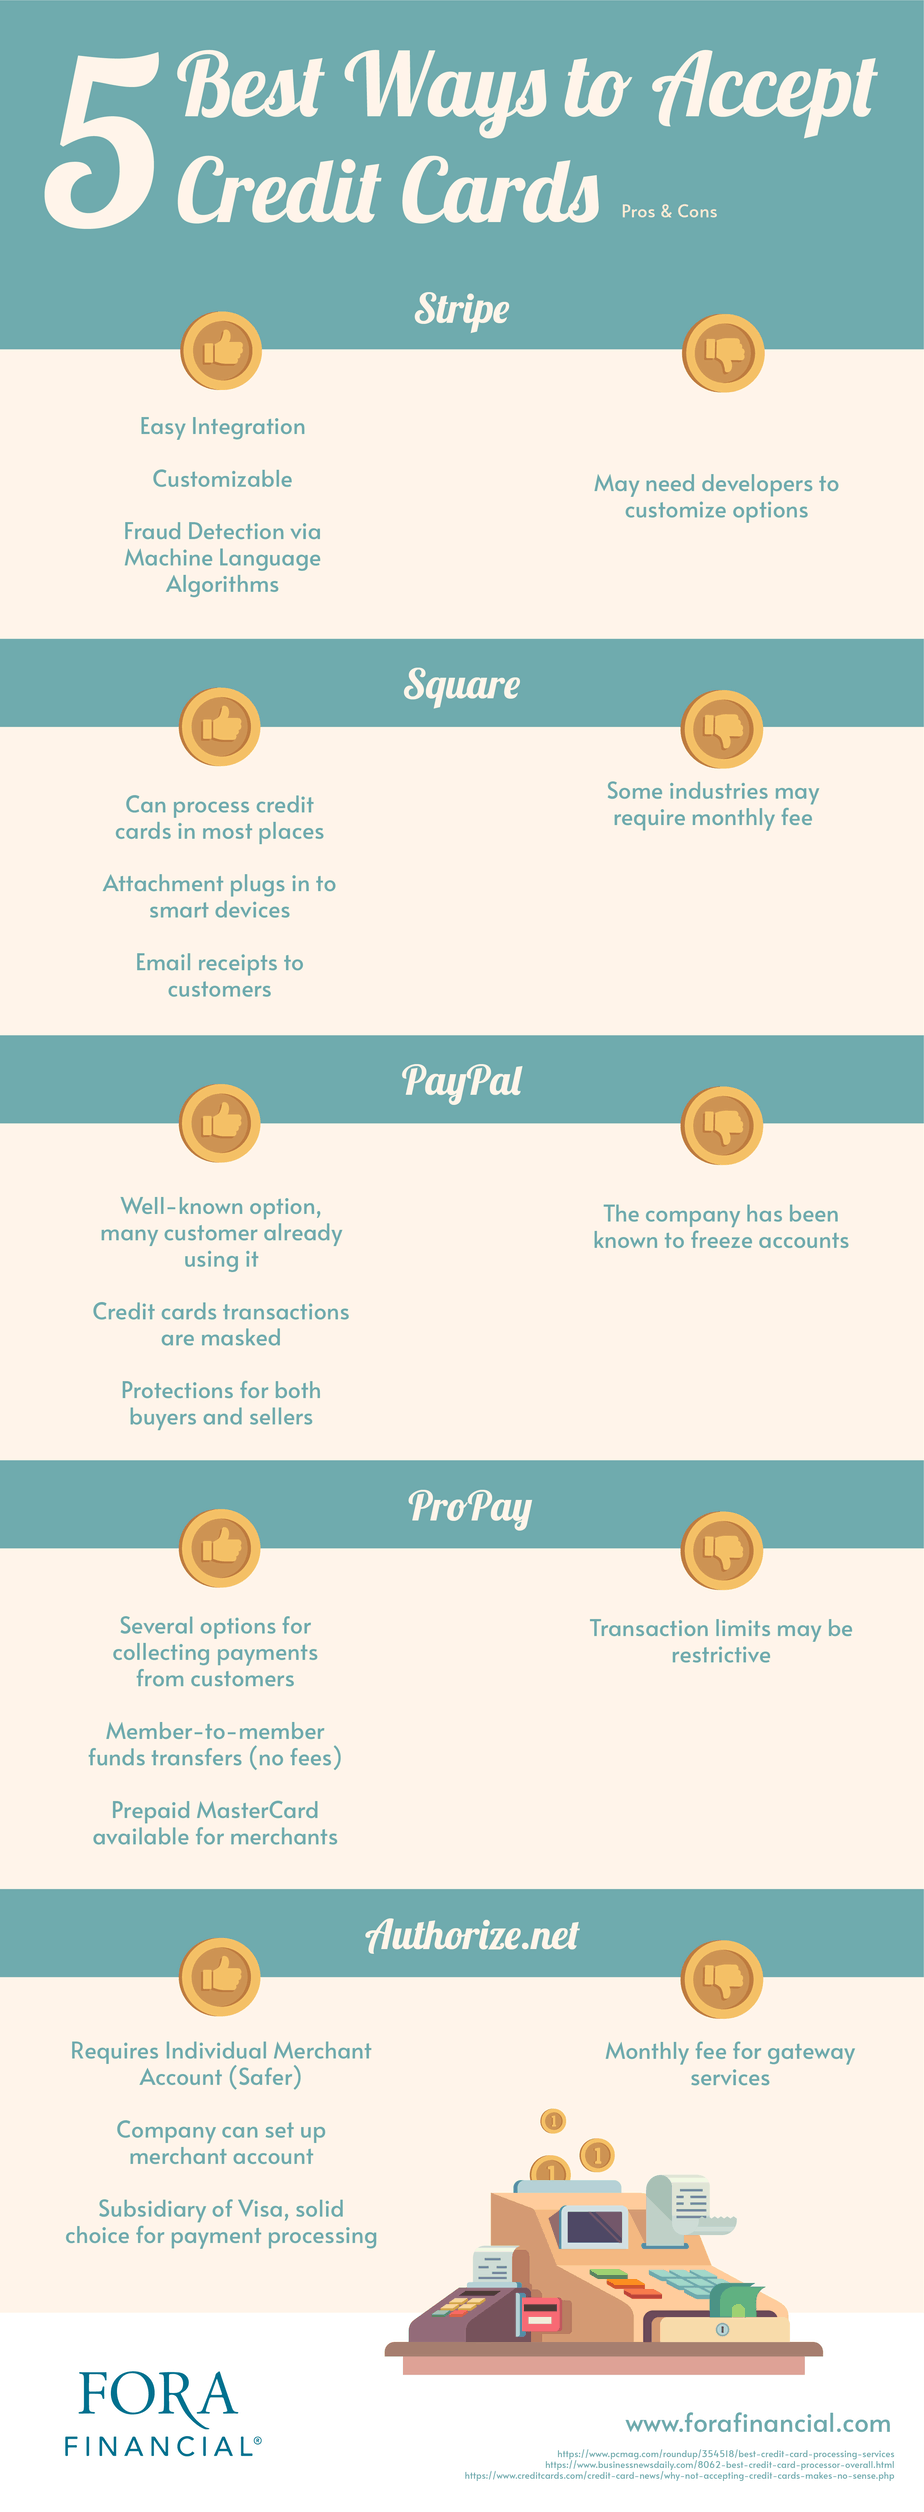 5 Best Ways to Accept Credit Card Infographic